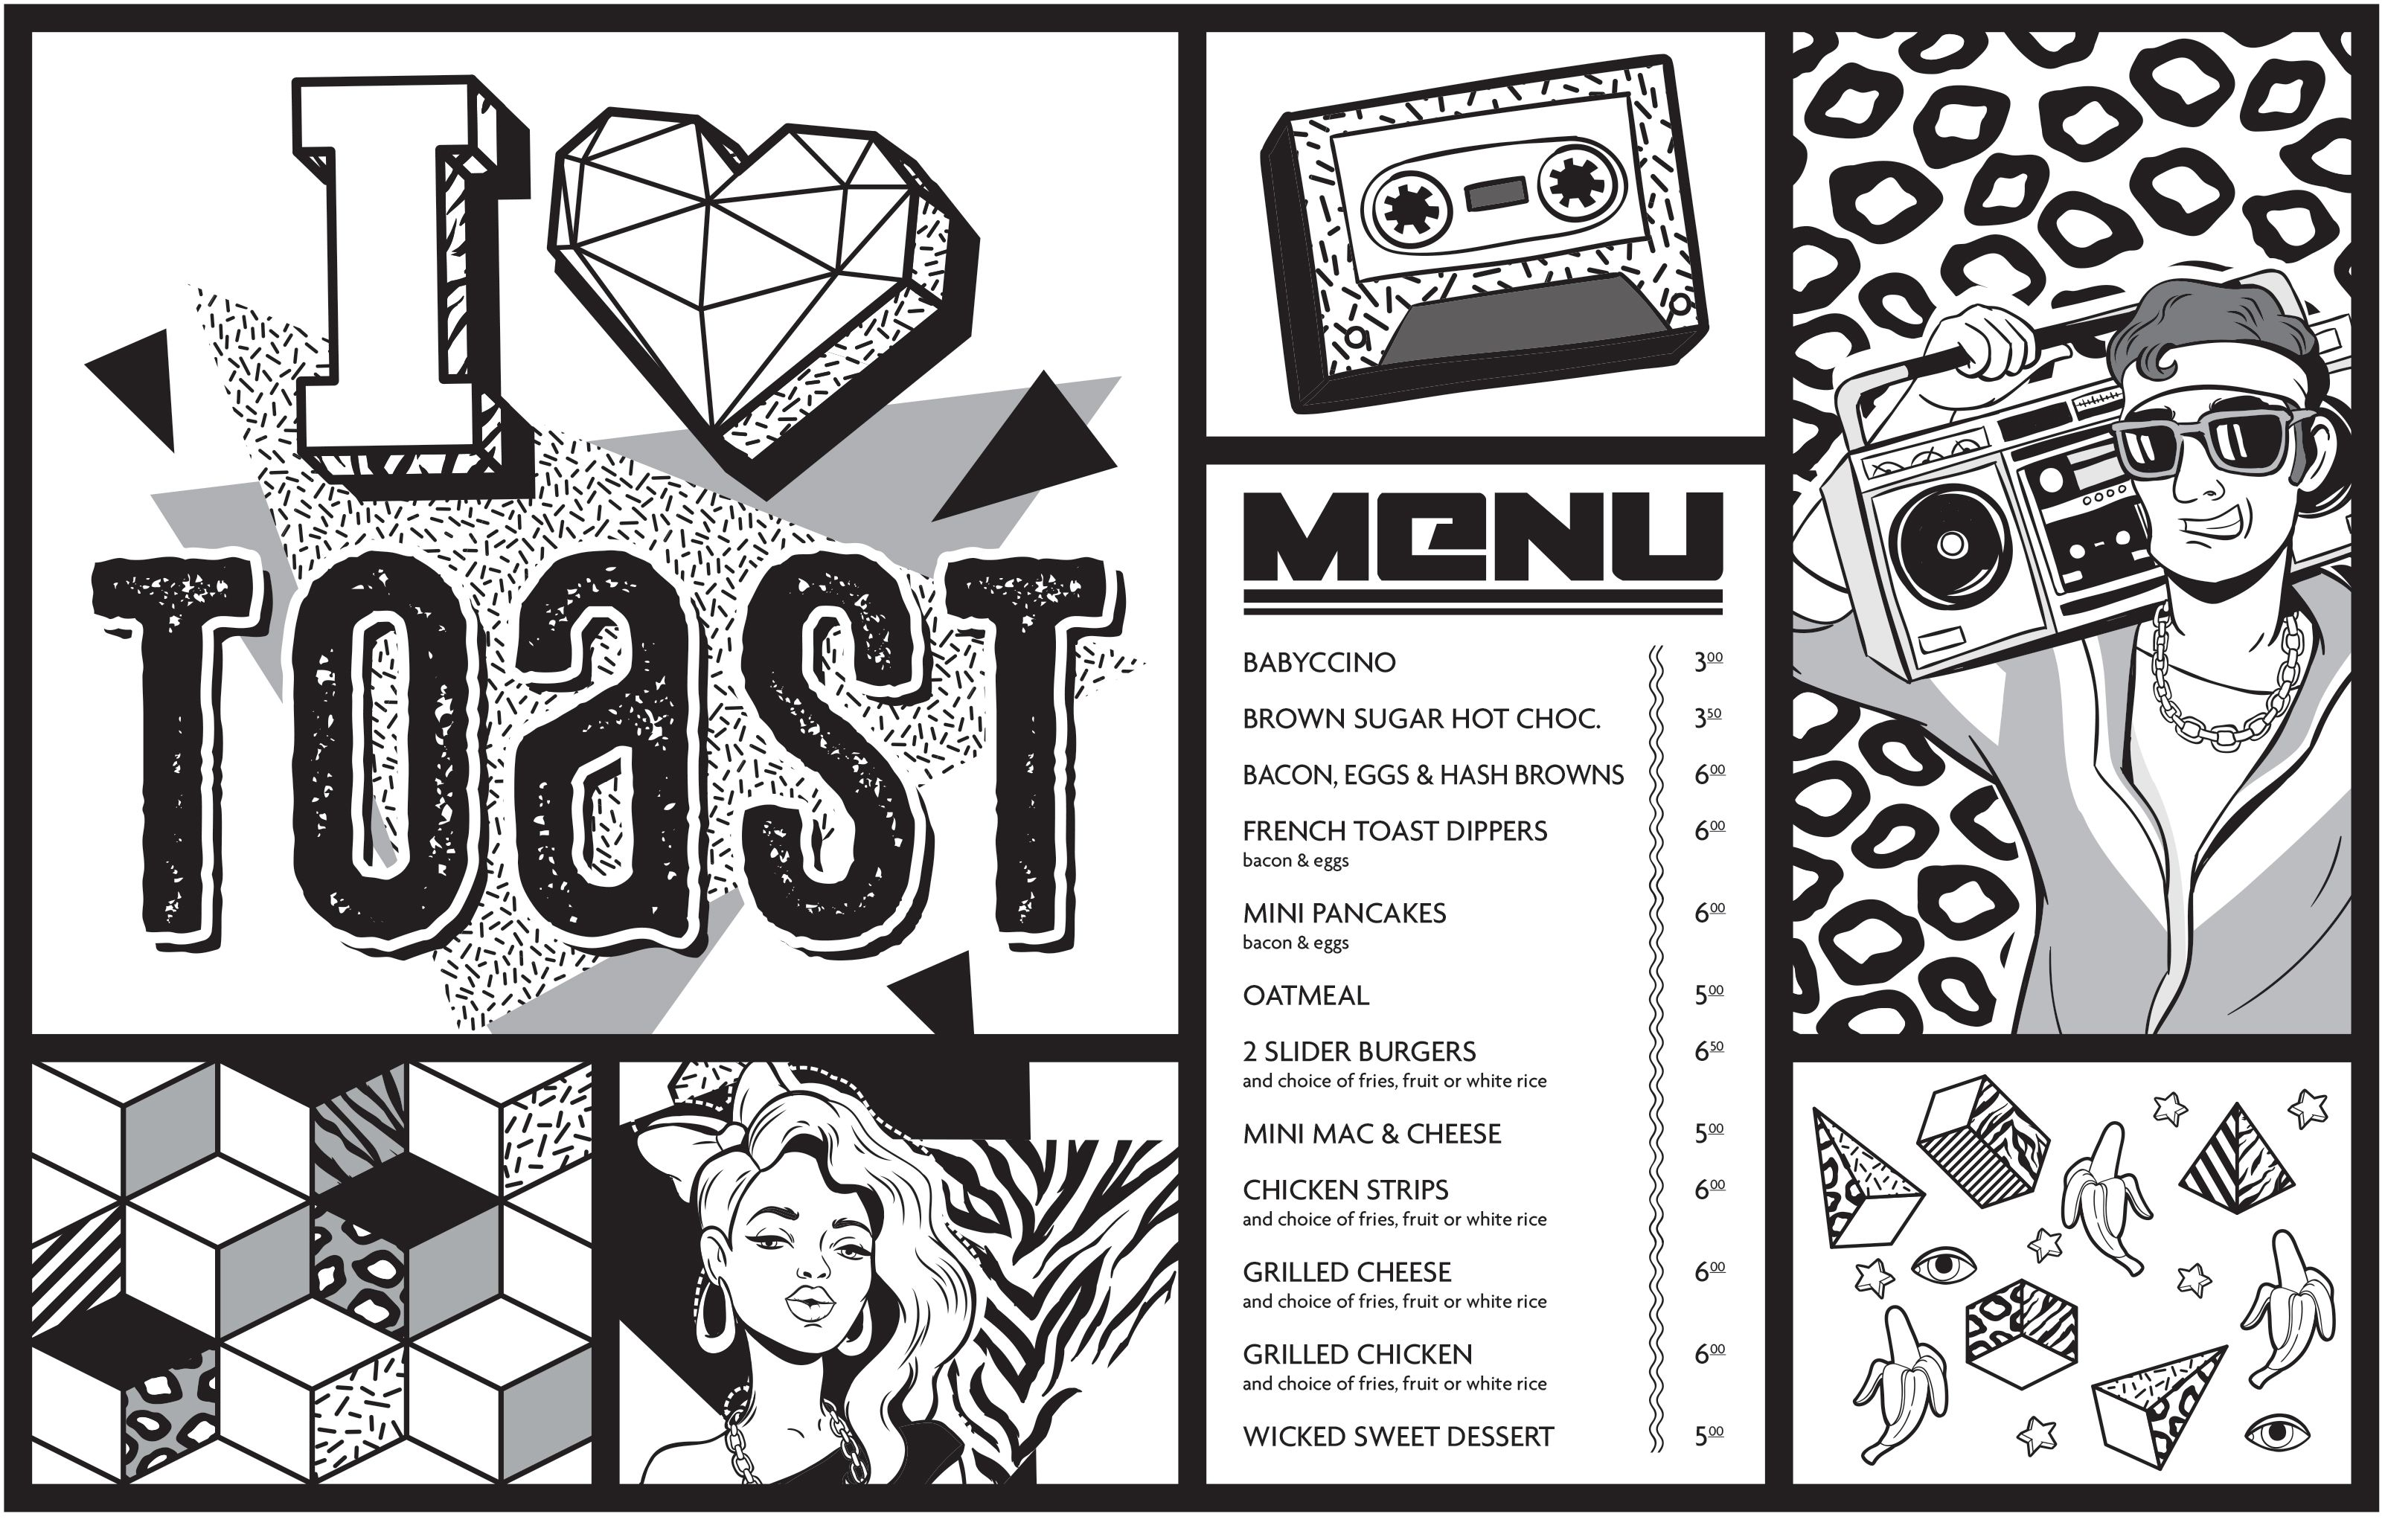 Toast Kids Menu.jpg